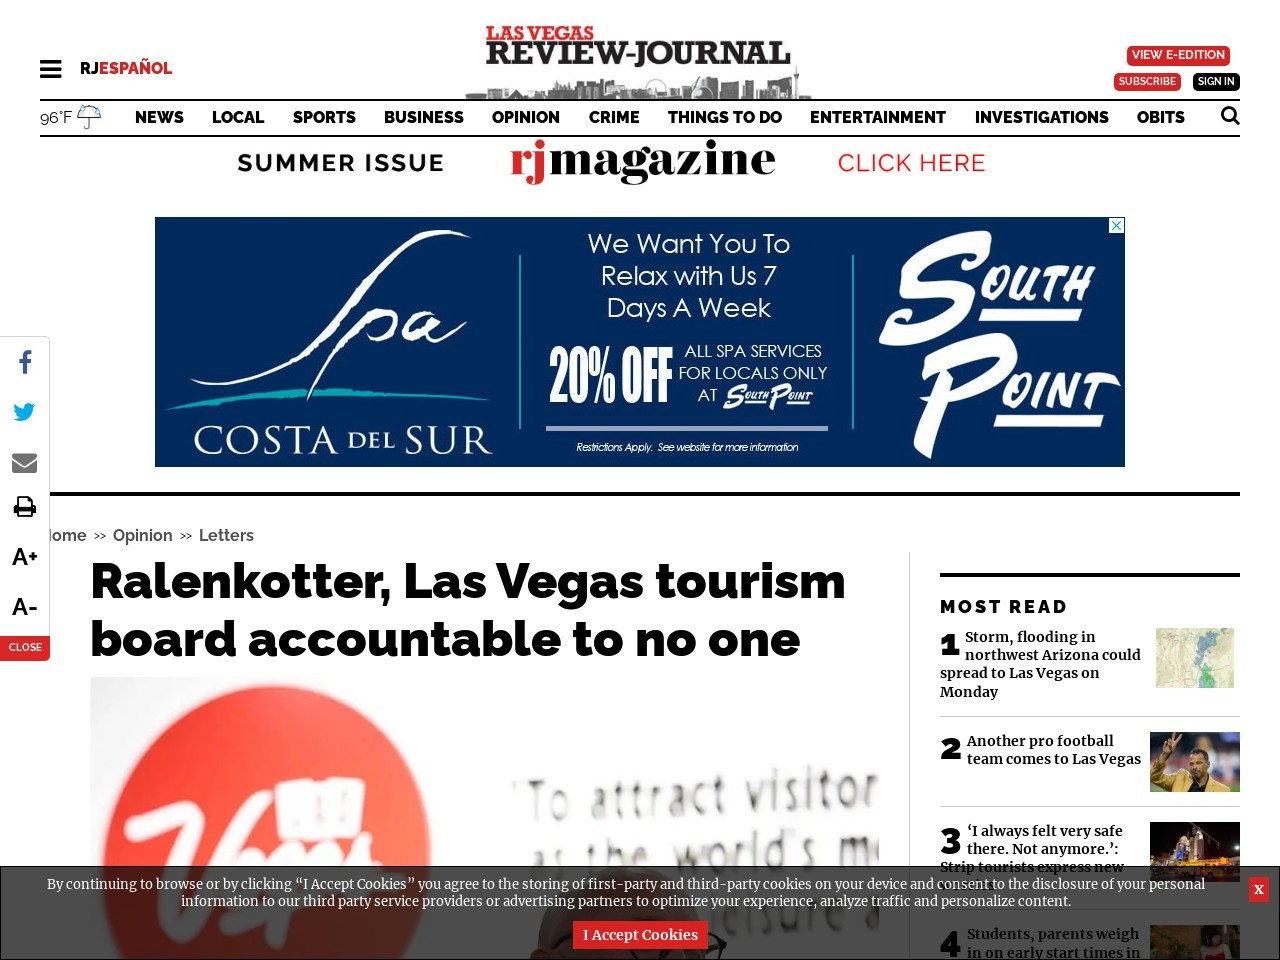 Ralenkotter, Las Vegas tourism board accountable to no one